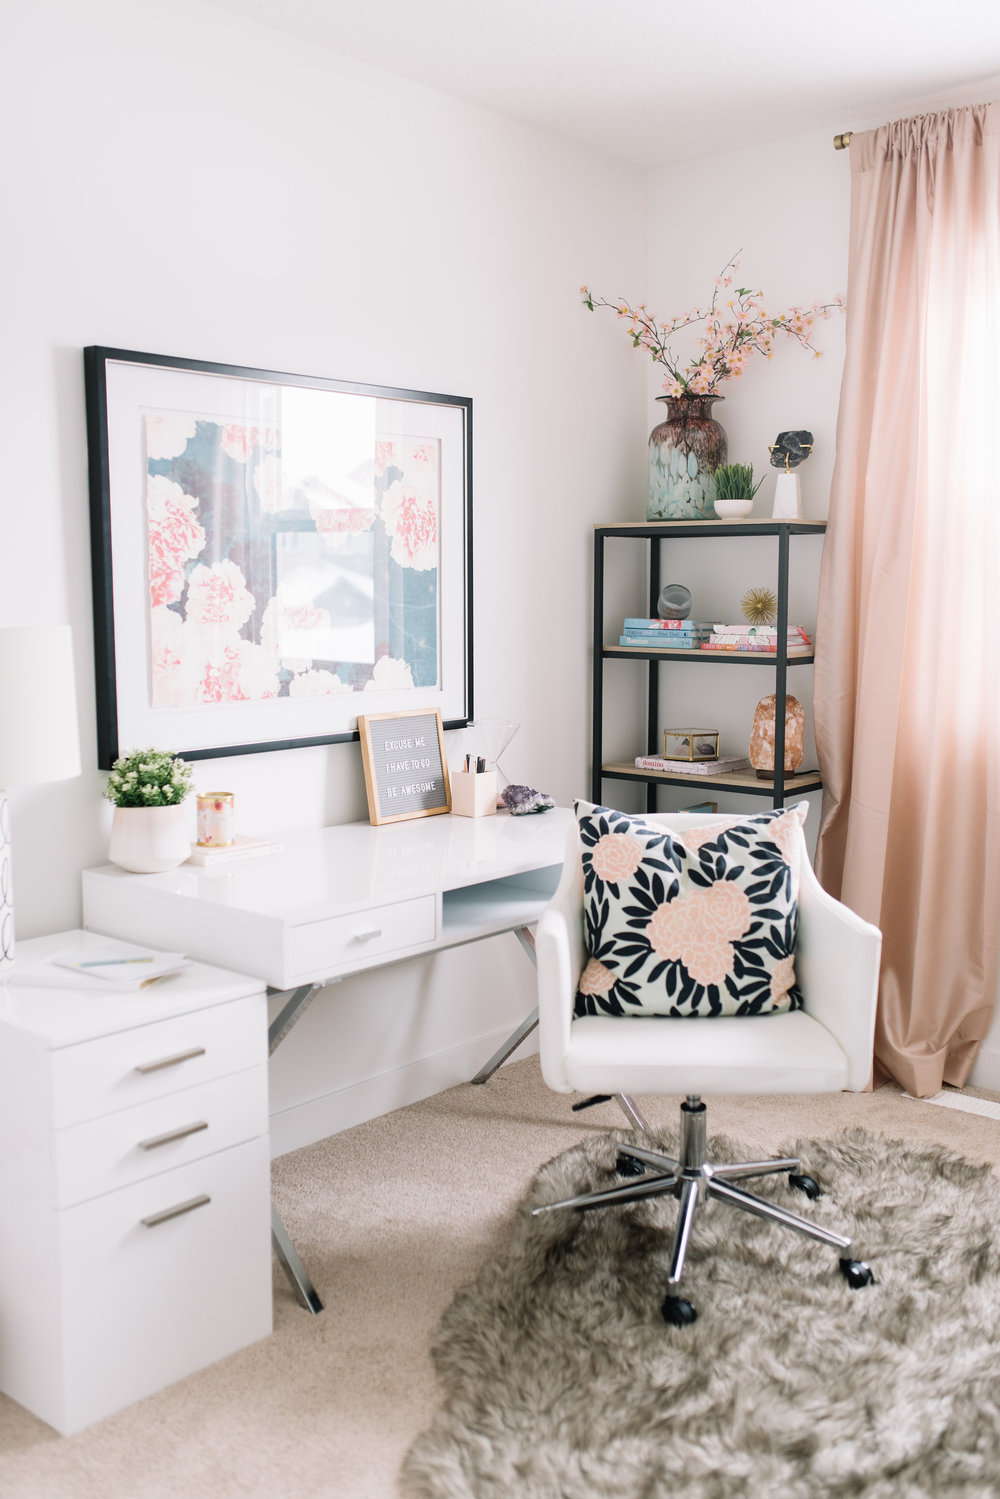 Home Office Organisation On Since Iu0027ve Decluttered And Reorganized Thought Iu0027d Share Few Tips For Your Own Home Office To Help You Get Organized Stay Productive Home Office Organization Tips u2014 204 Park